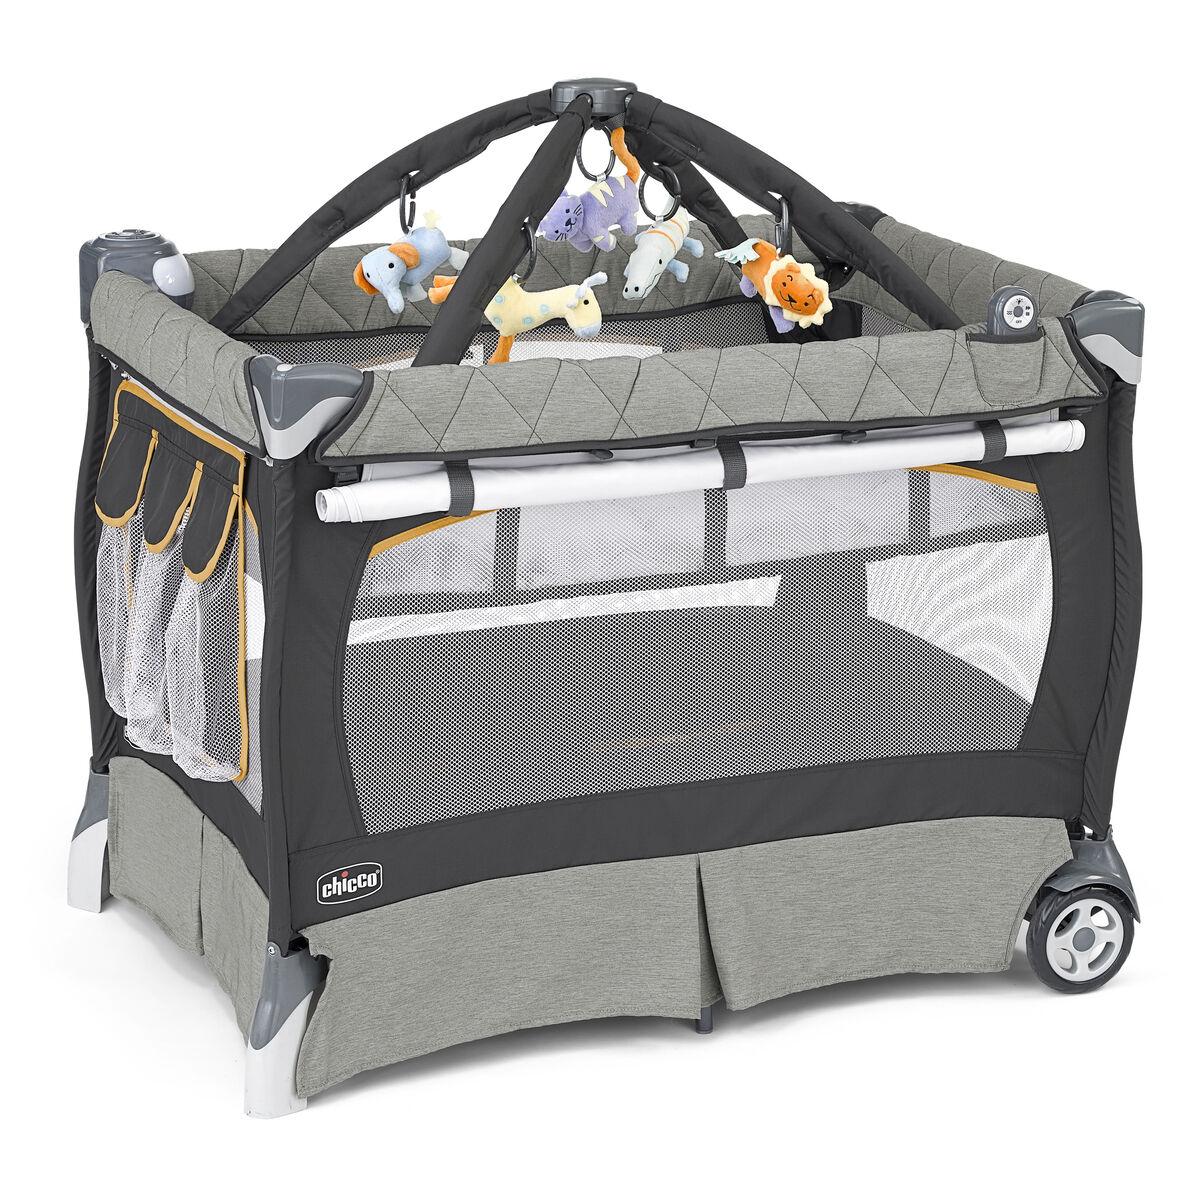 Chicco Lullaby® LX Playard - Sedona™Lullaby LX Playard - Sedona